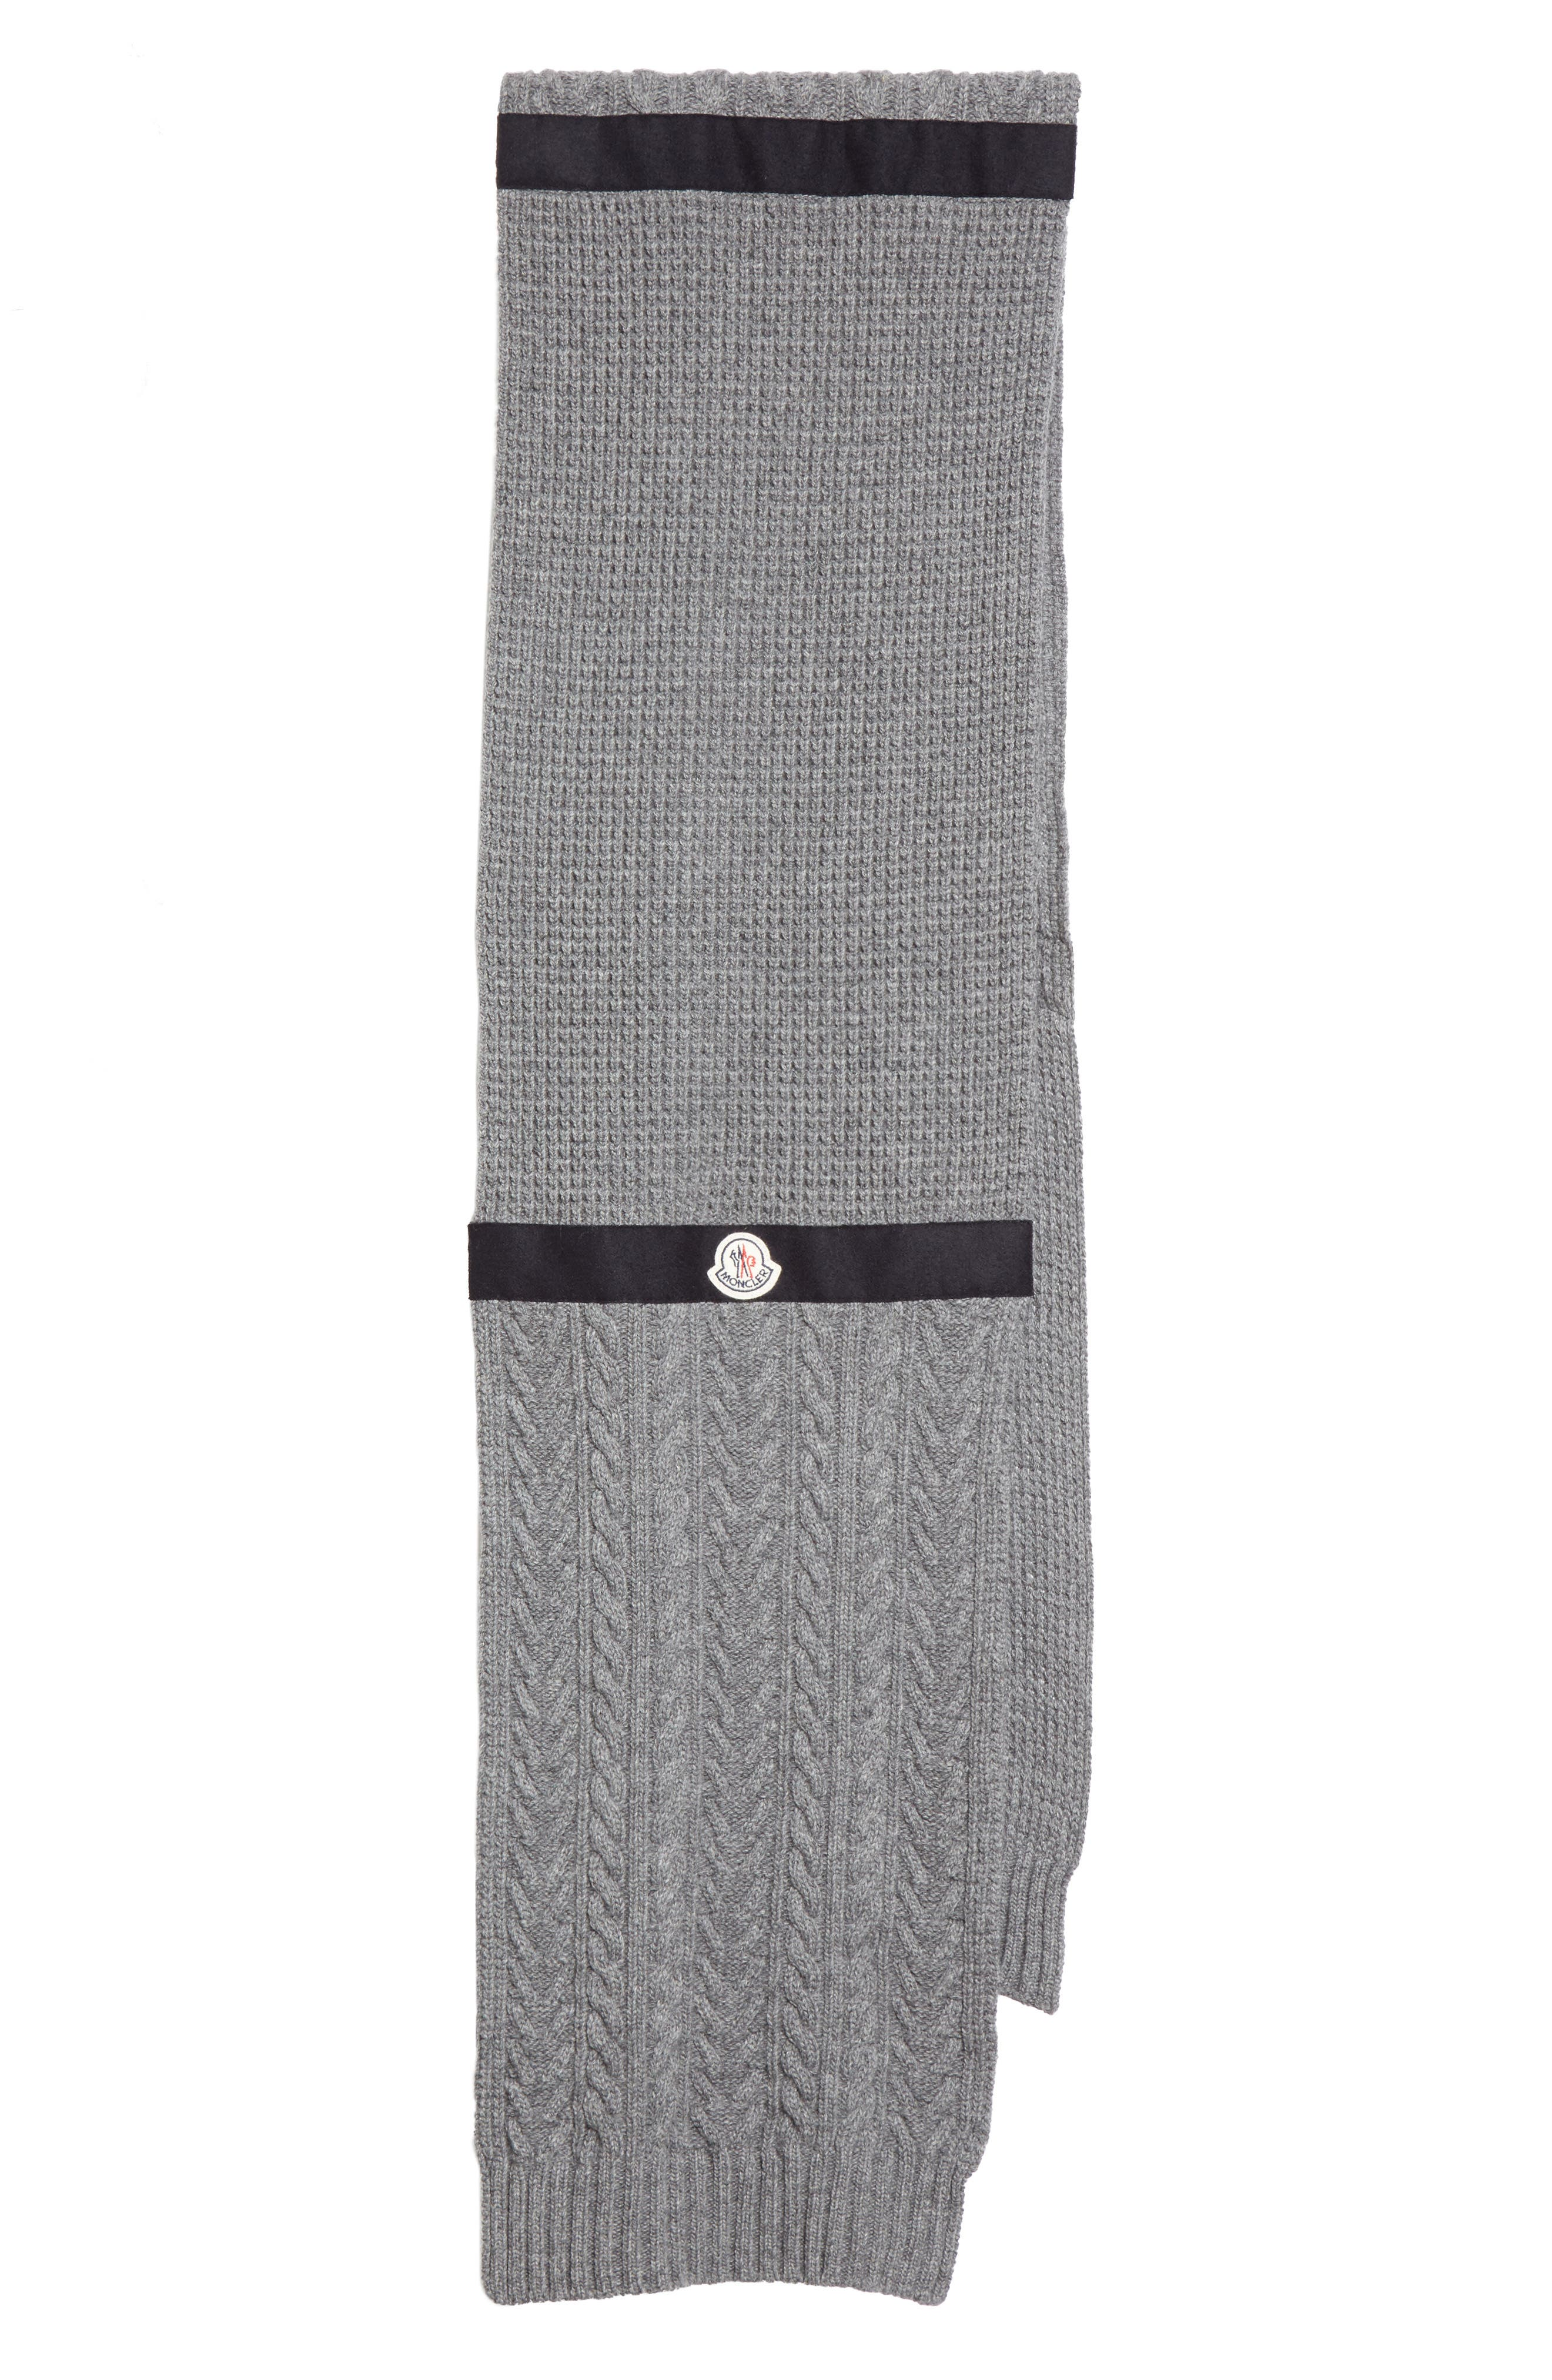 Textured Wool & Cashmere Scarf,                             Main thumbnail 1, color,                             031